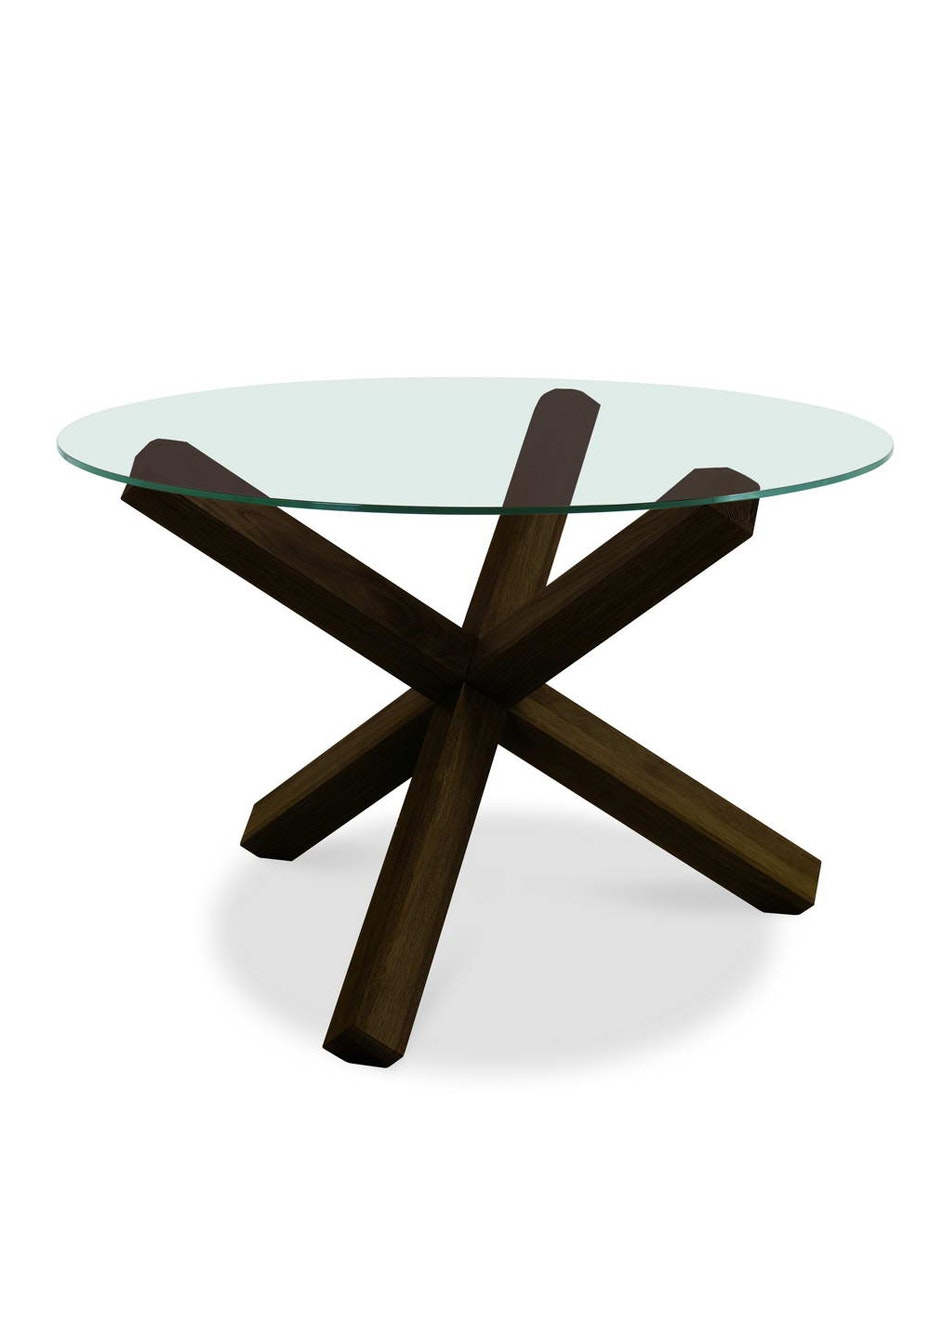 Furniture By Design - Lyon Round Glass Table- Walnut and Glass